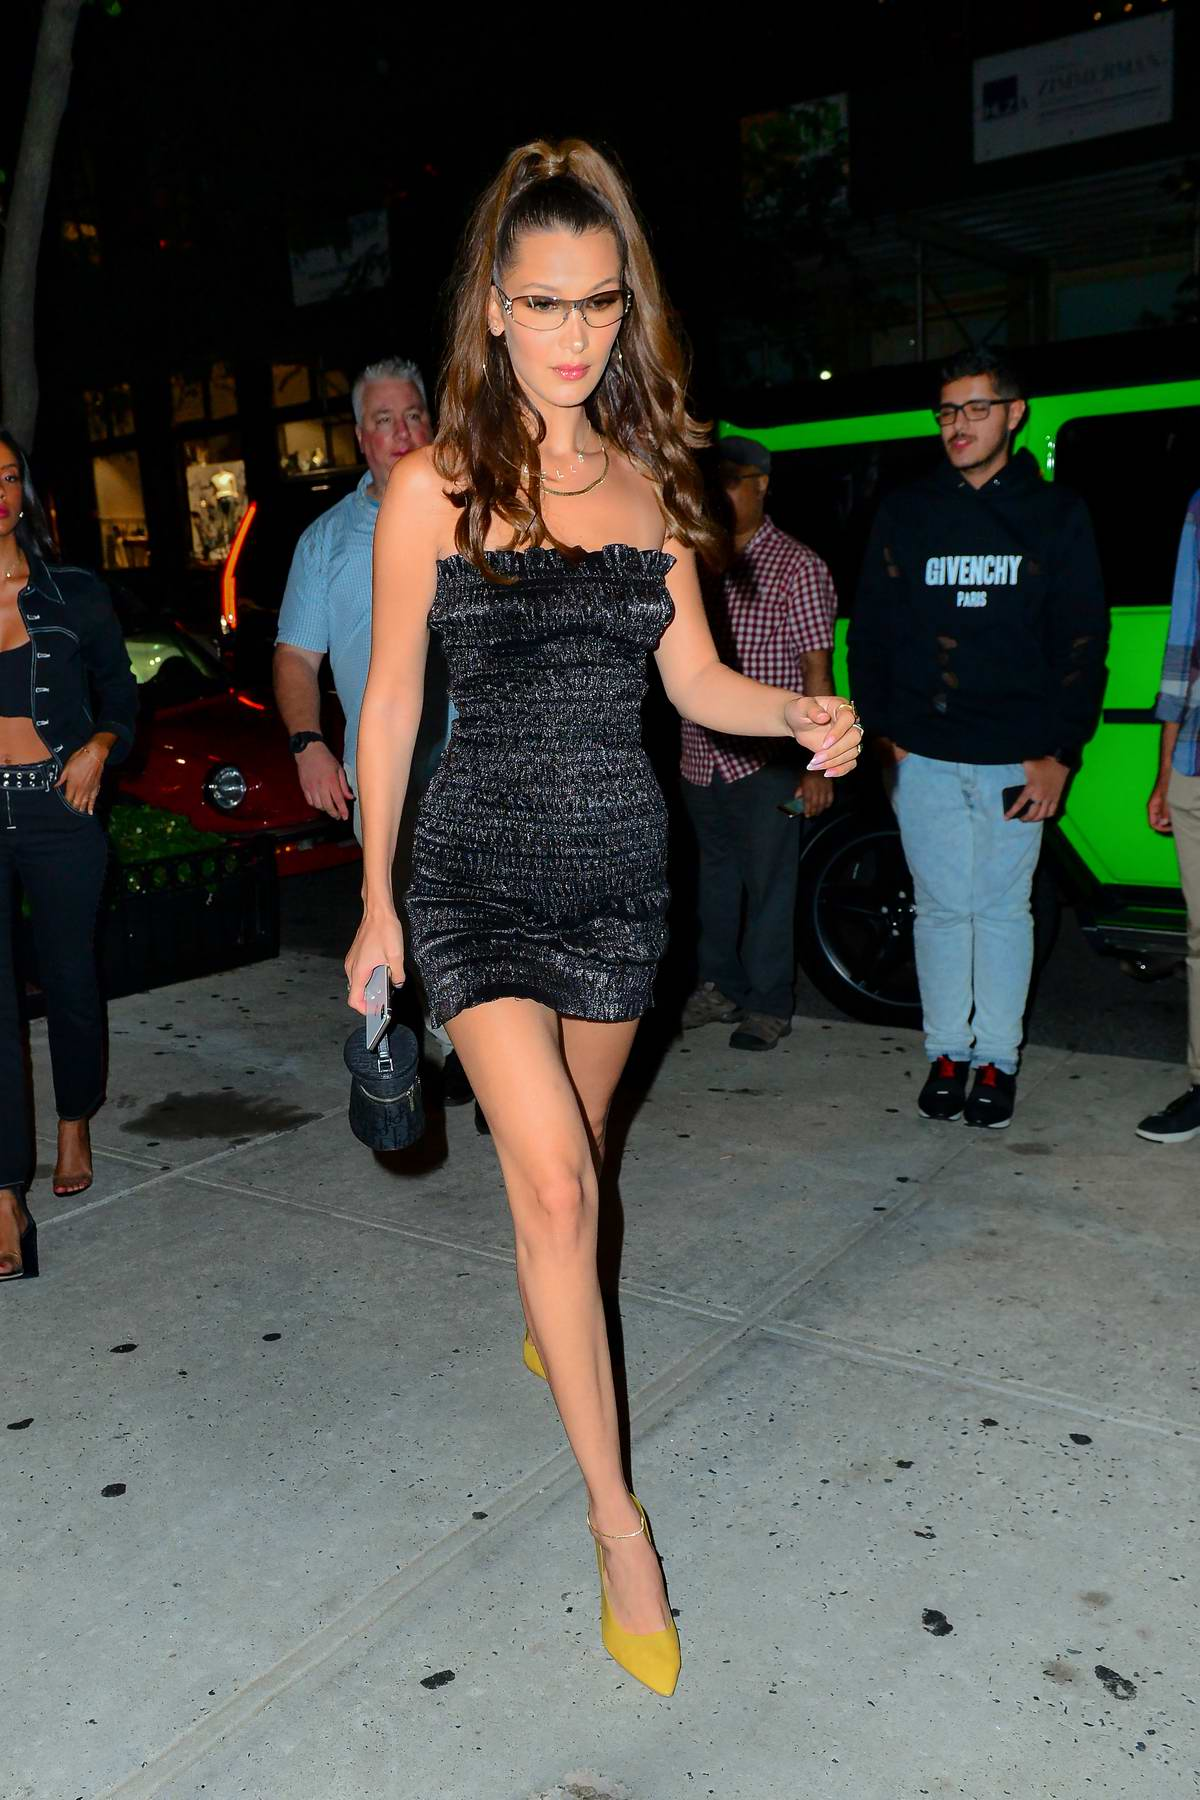 Bella Hadid wears a short black dress as she arrives at Cipriani's for a Pre-Fashion Week Party in New York City